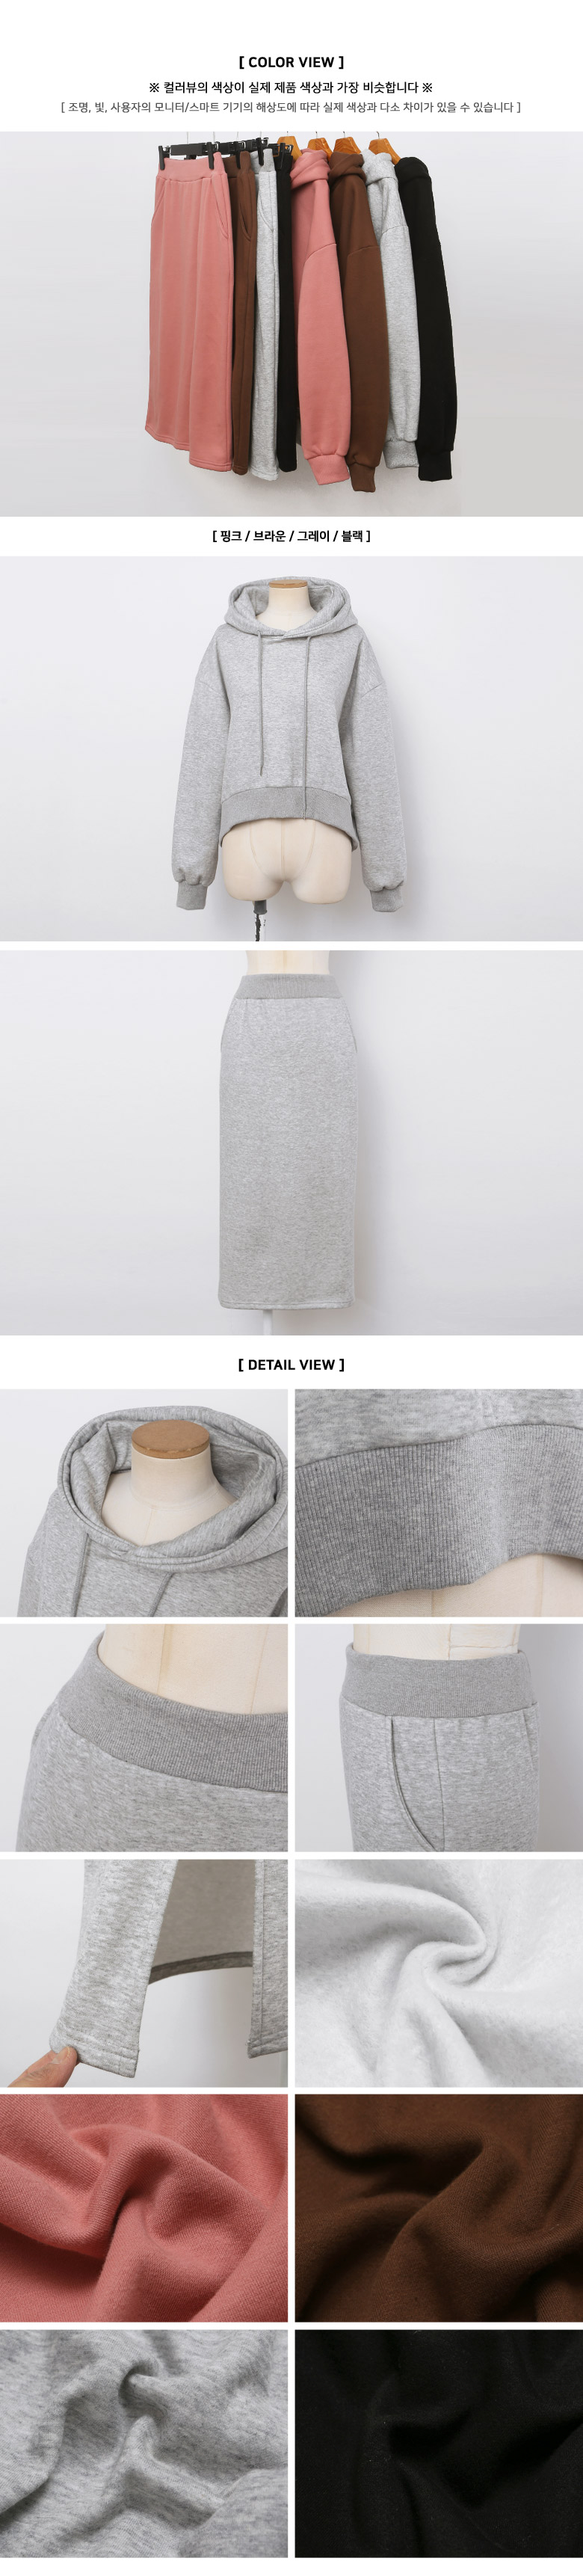 Dian brushed hooded skirt two-piece set